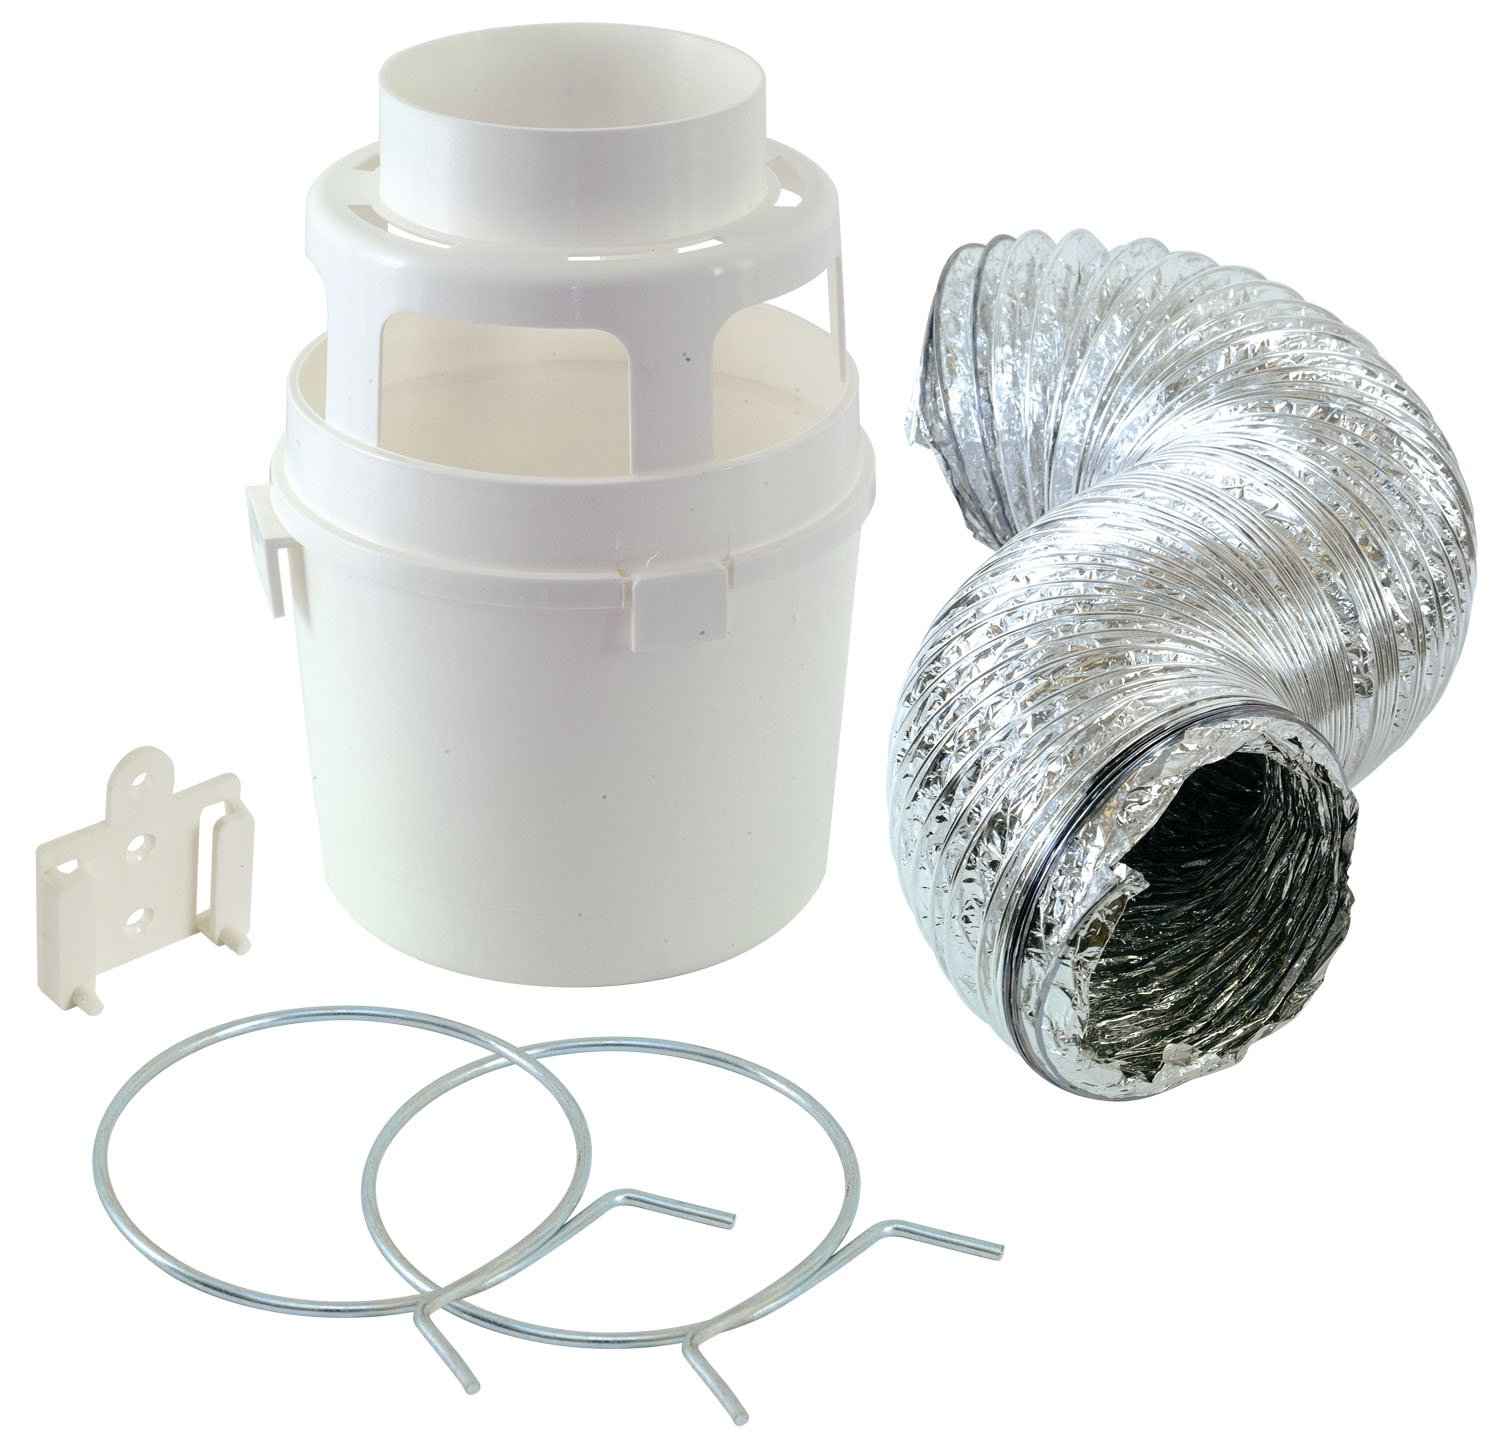 Amazon.com: Lambro 60640 Indoor Dryer Vent Kit: Appliances